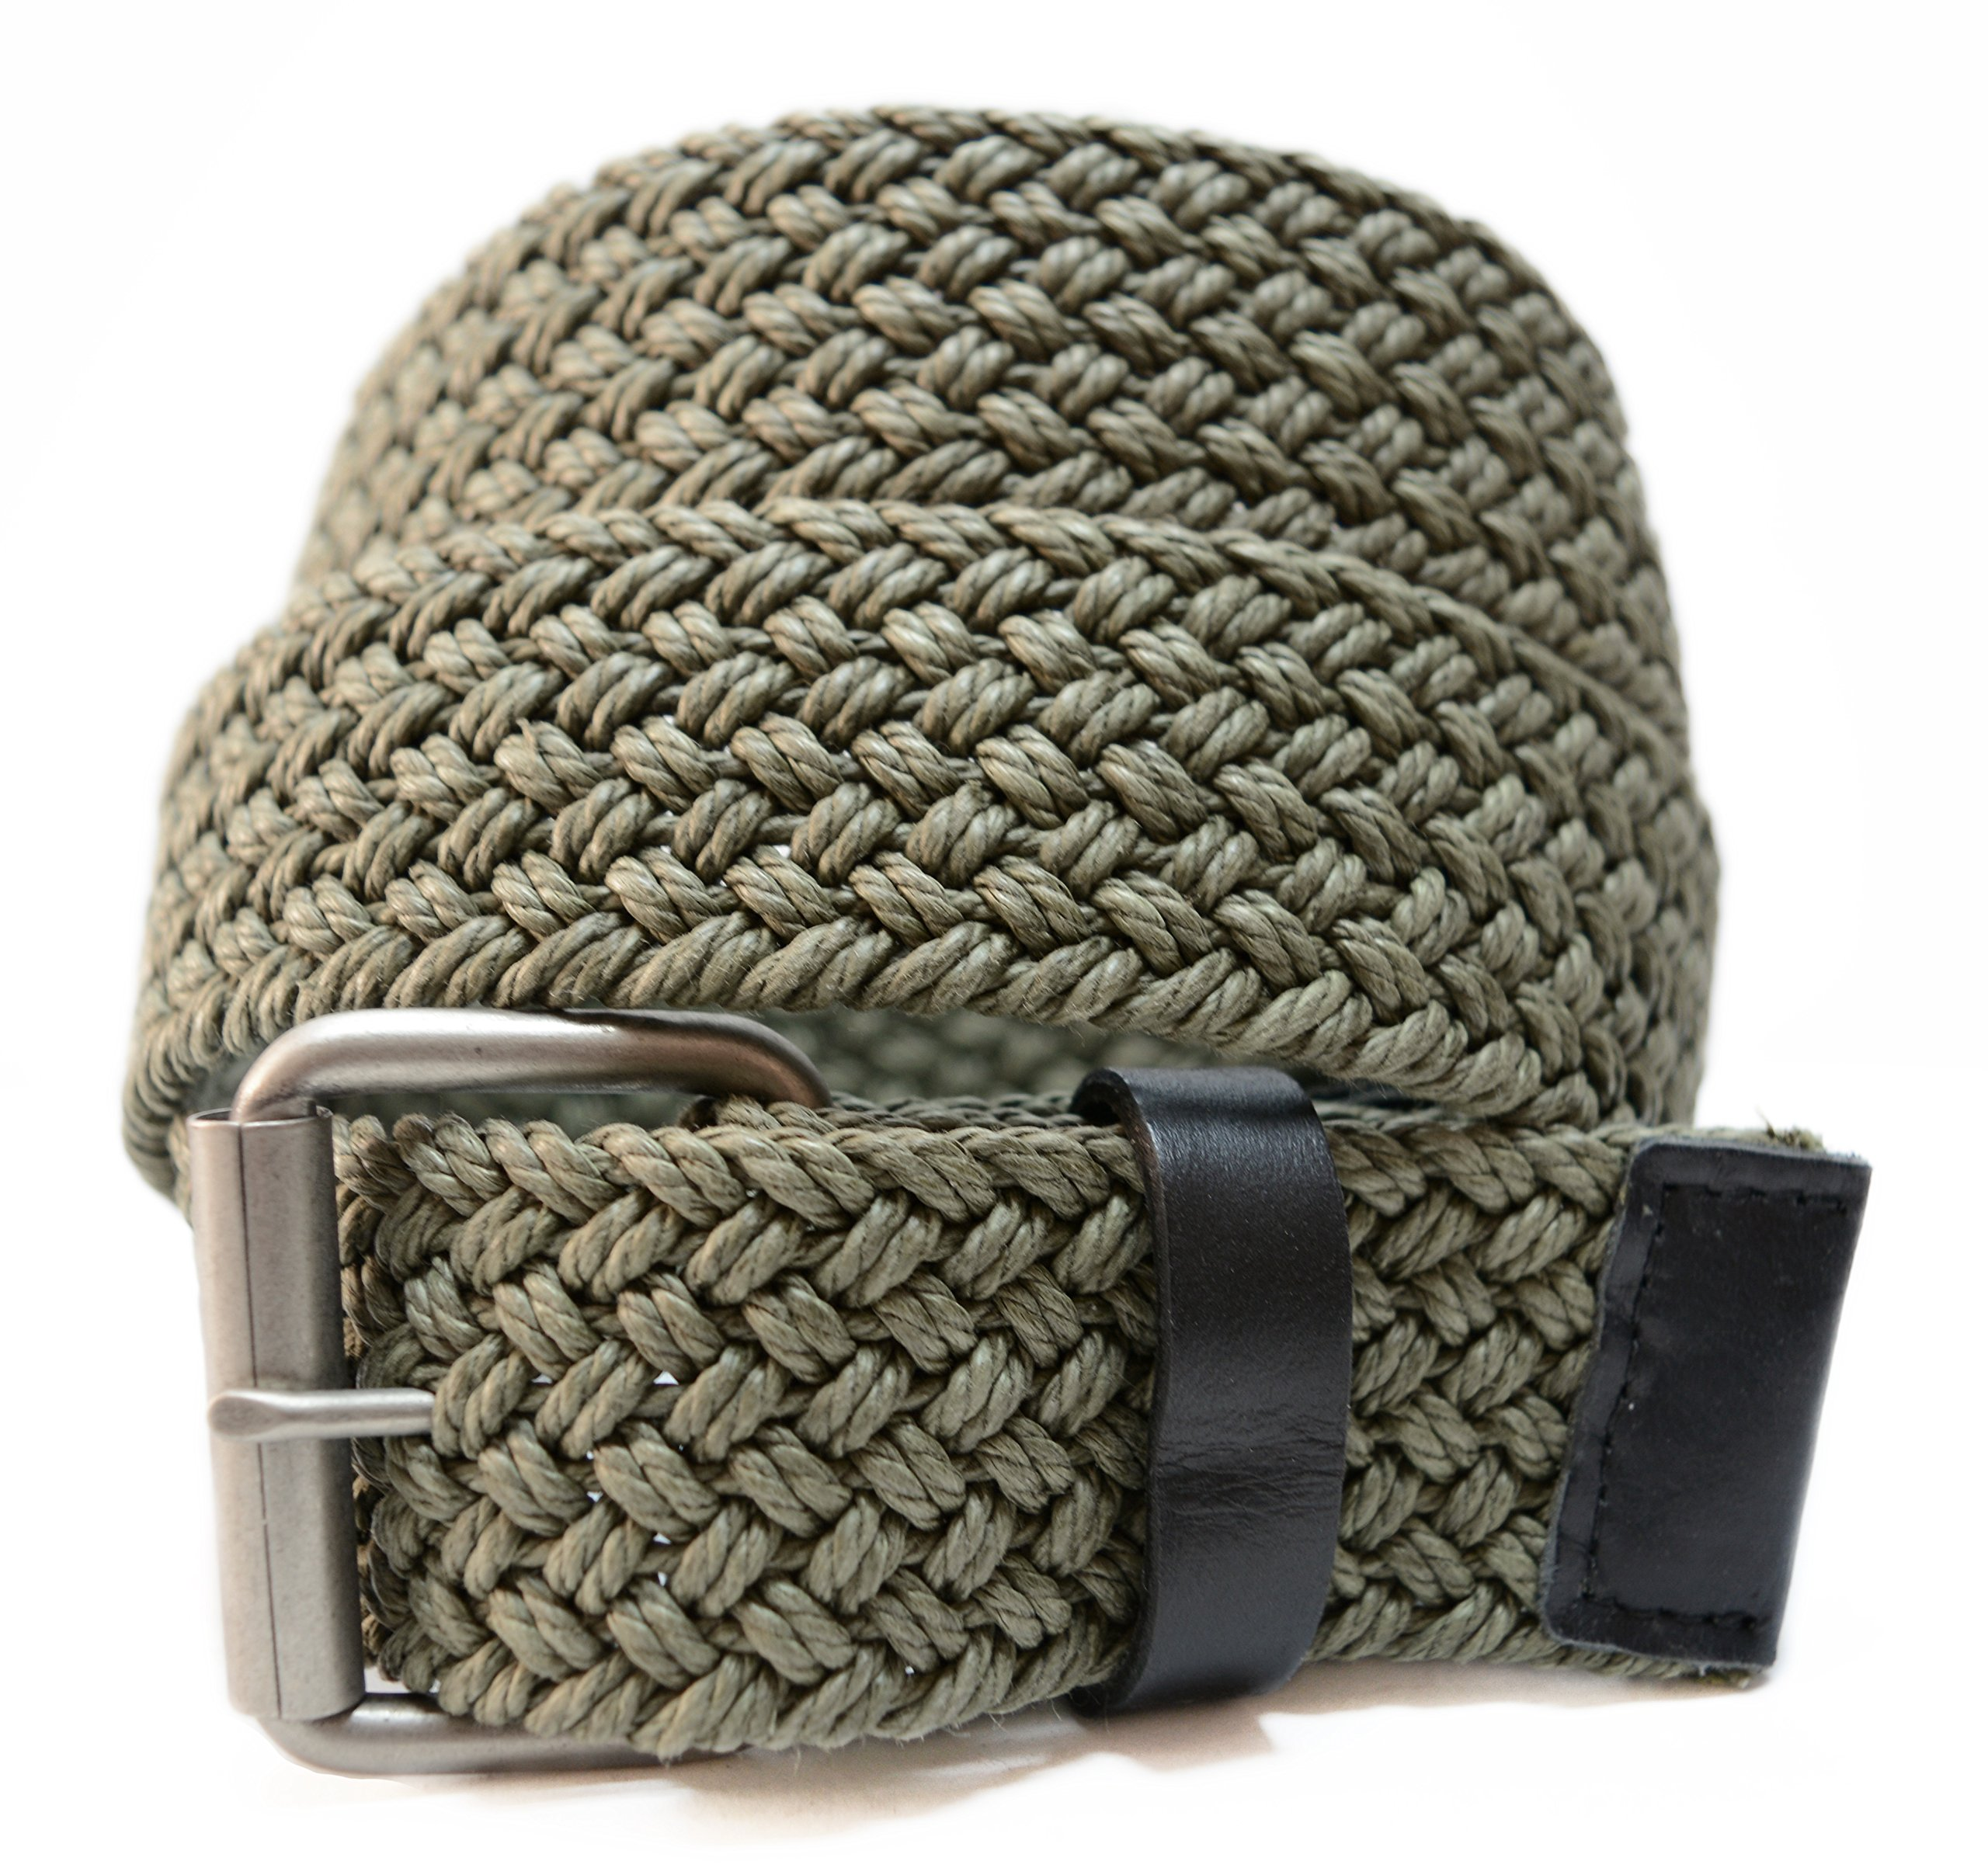 AK744 - Men's Casual Nautical Woven Braided Cotton Roller Buckle Belt (S (fits 29'' waist), Olive)